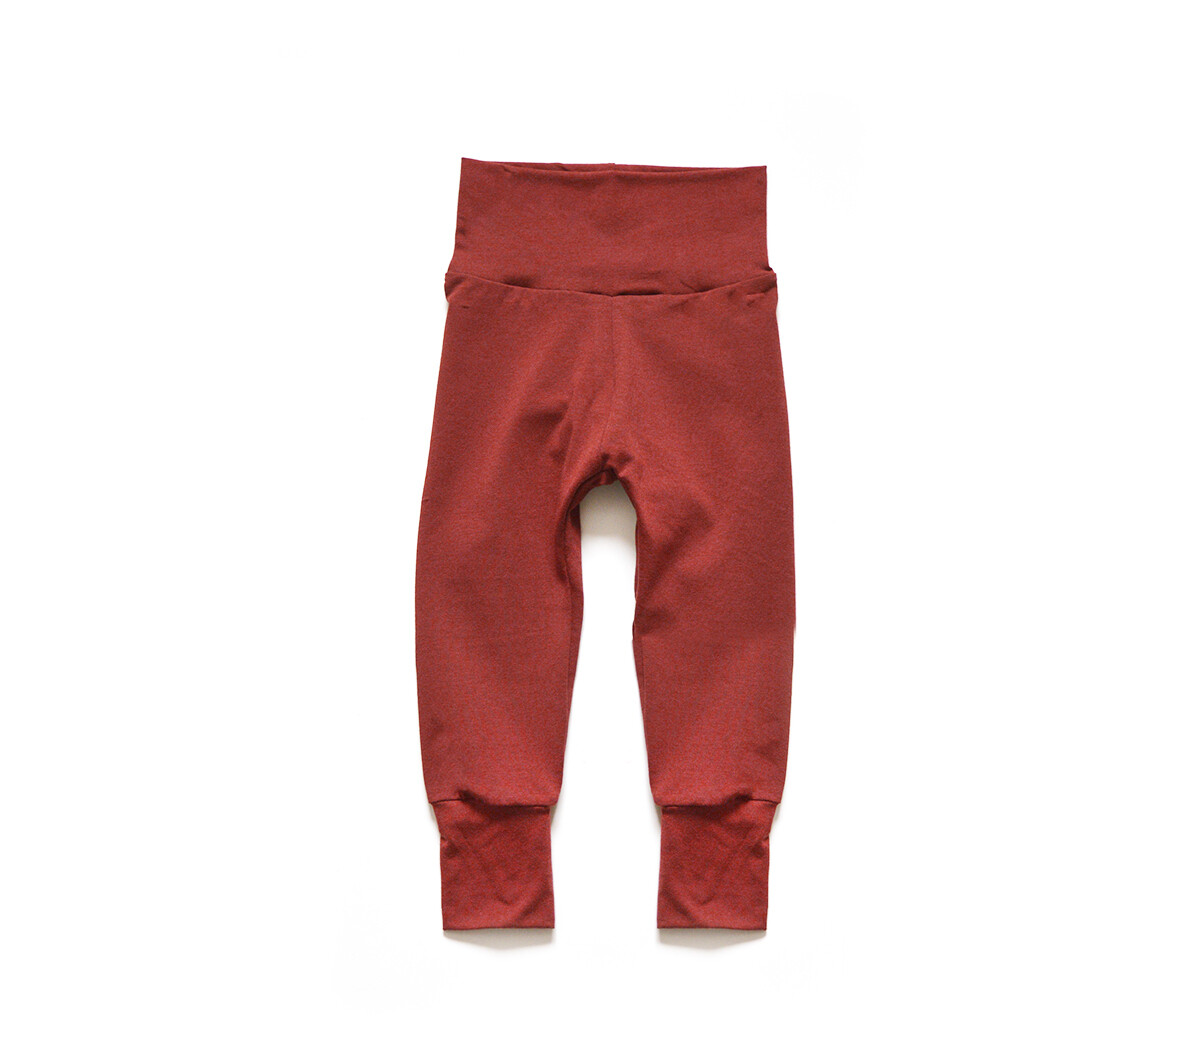 Little Sprout Pants™ in Terra Cotta | Grow With Me Leggings - Cotton